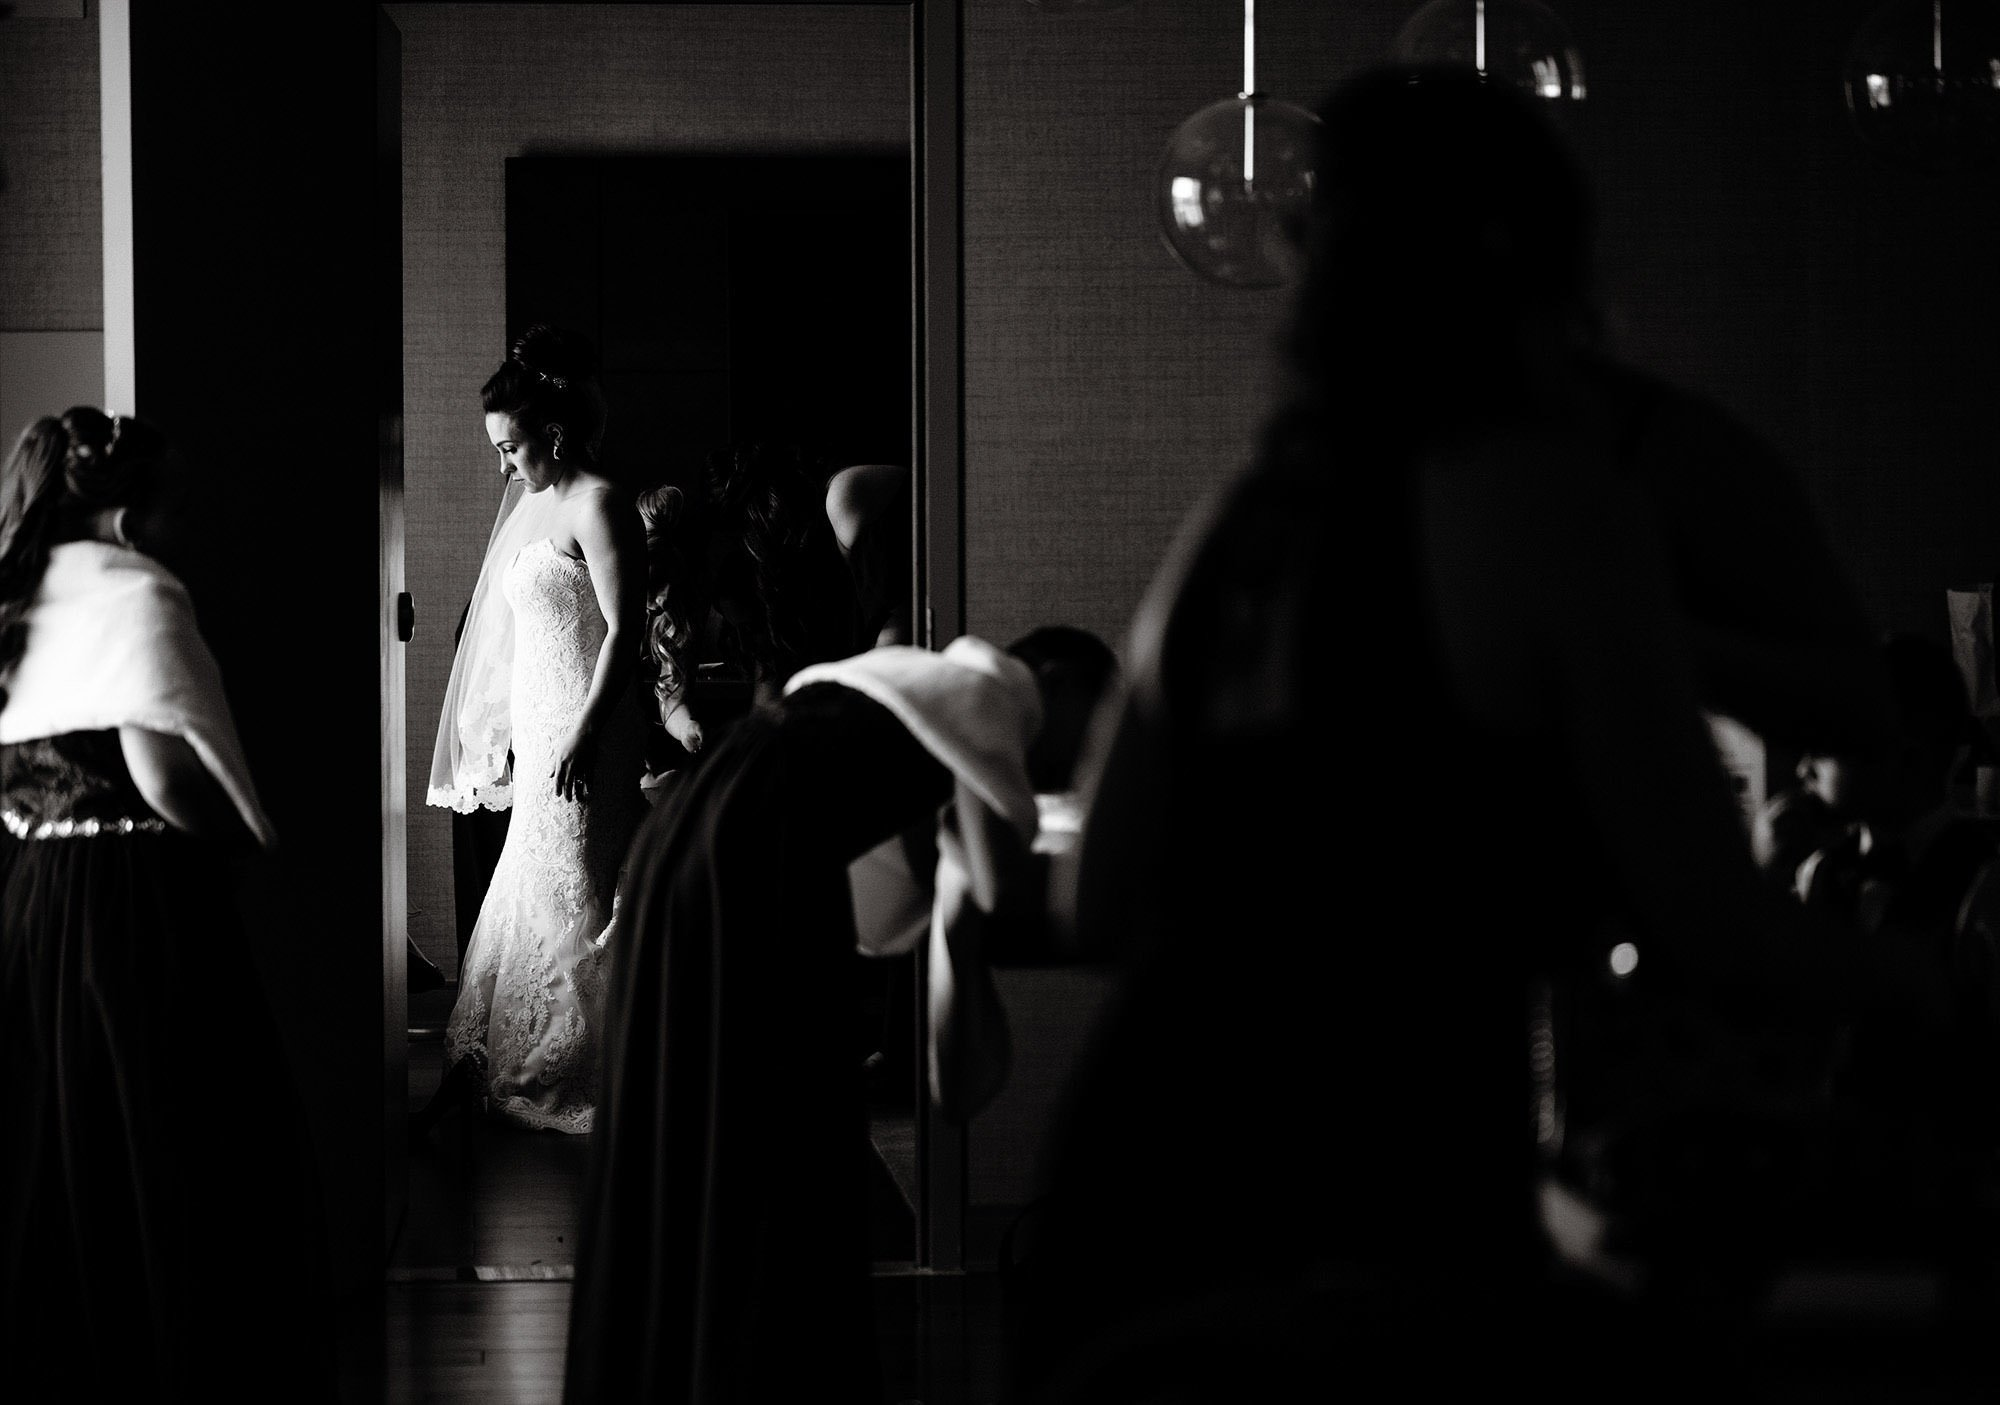 The bride puts on her dress before the wedding ceremony at the Meeting House at Olde Mistick Village.